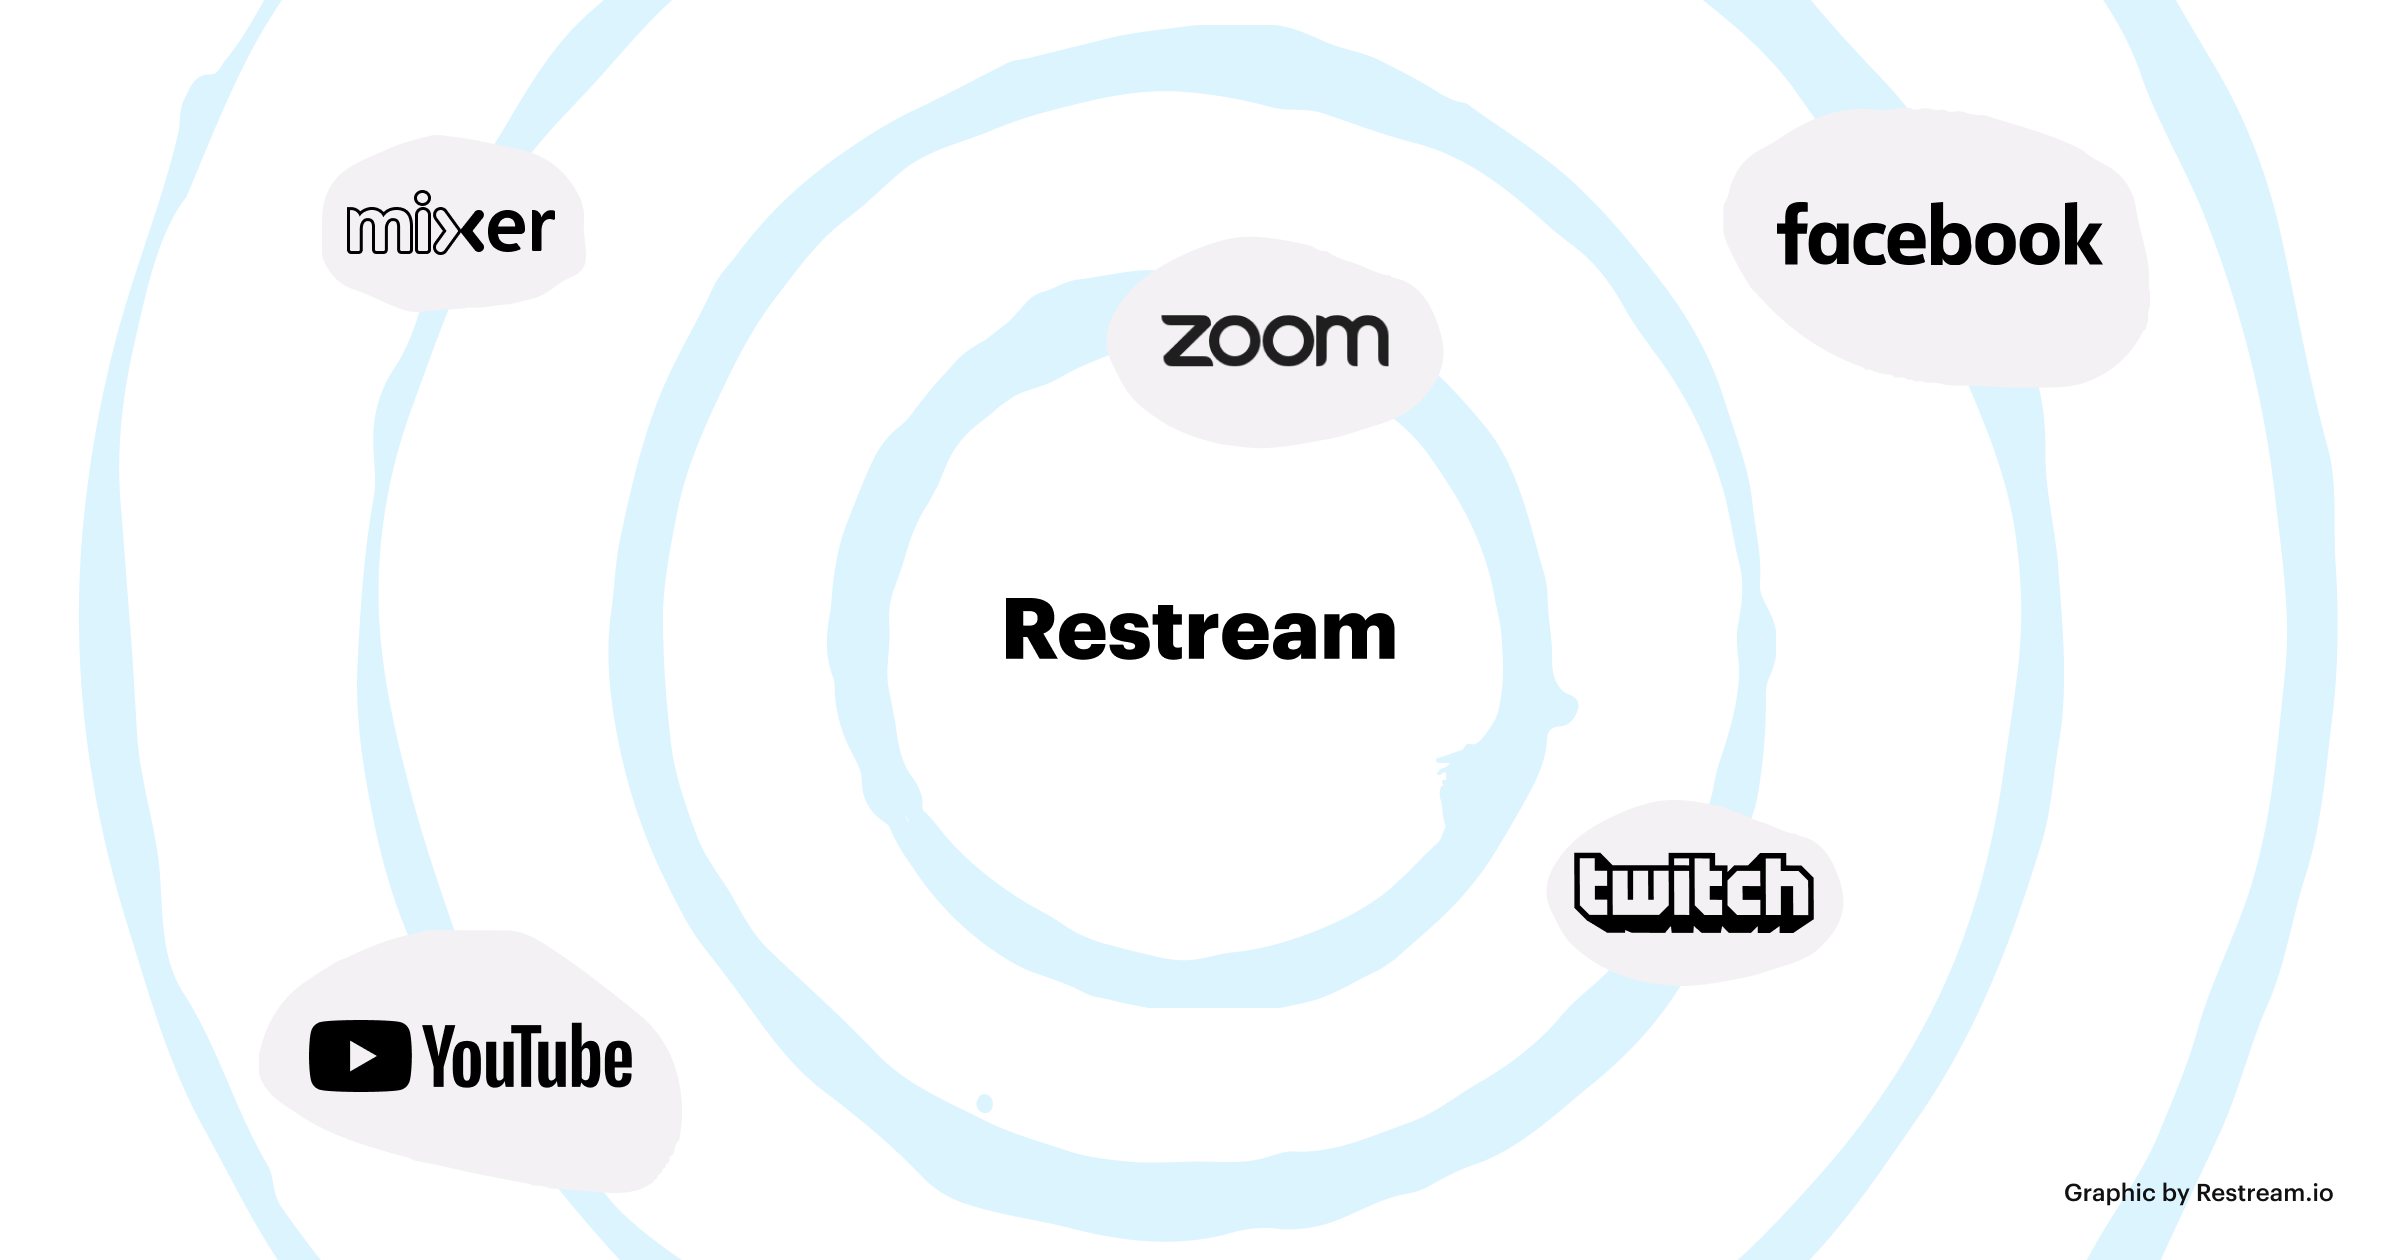 Stream to Zoom, Facebook, YouTube, Twitch, Mixer with Restream